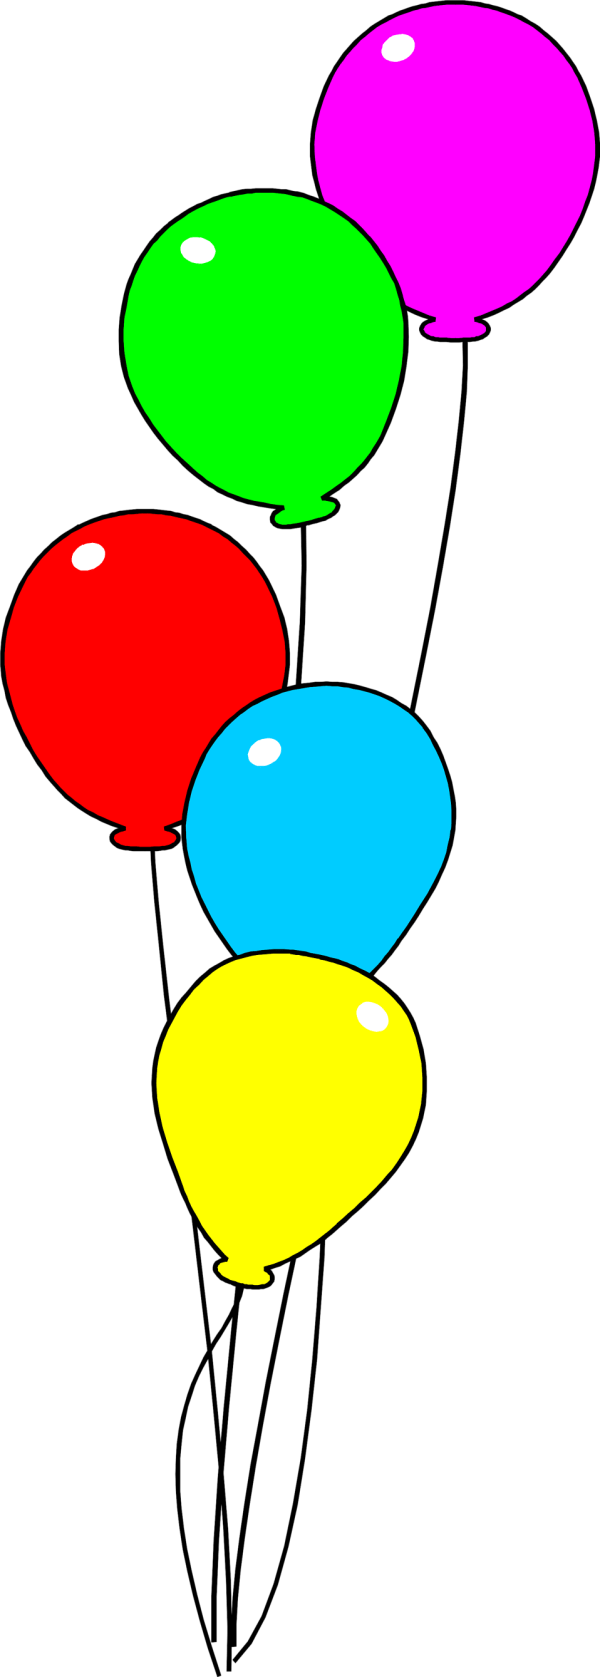 Balloons Free Stock Illustration Of Colorful